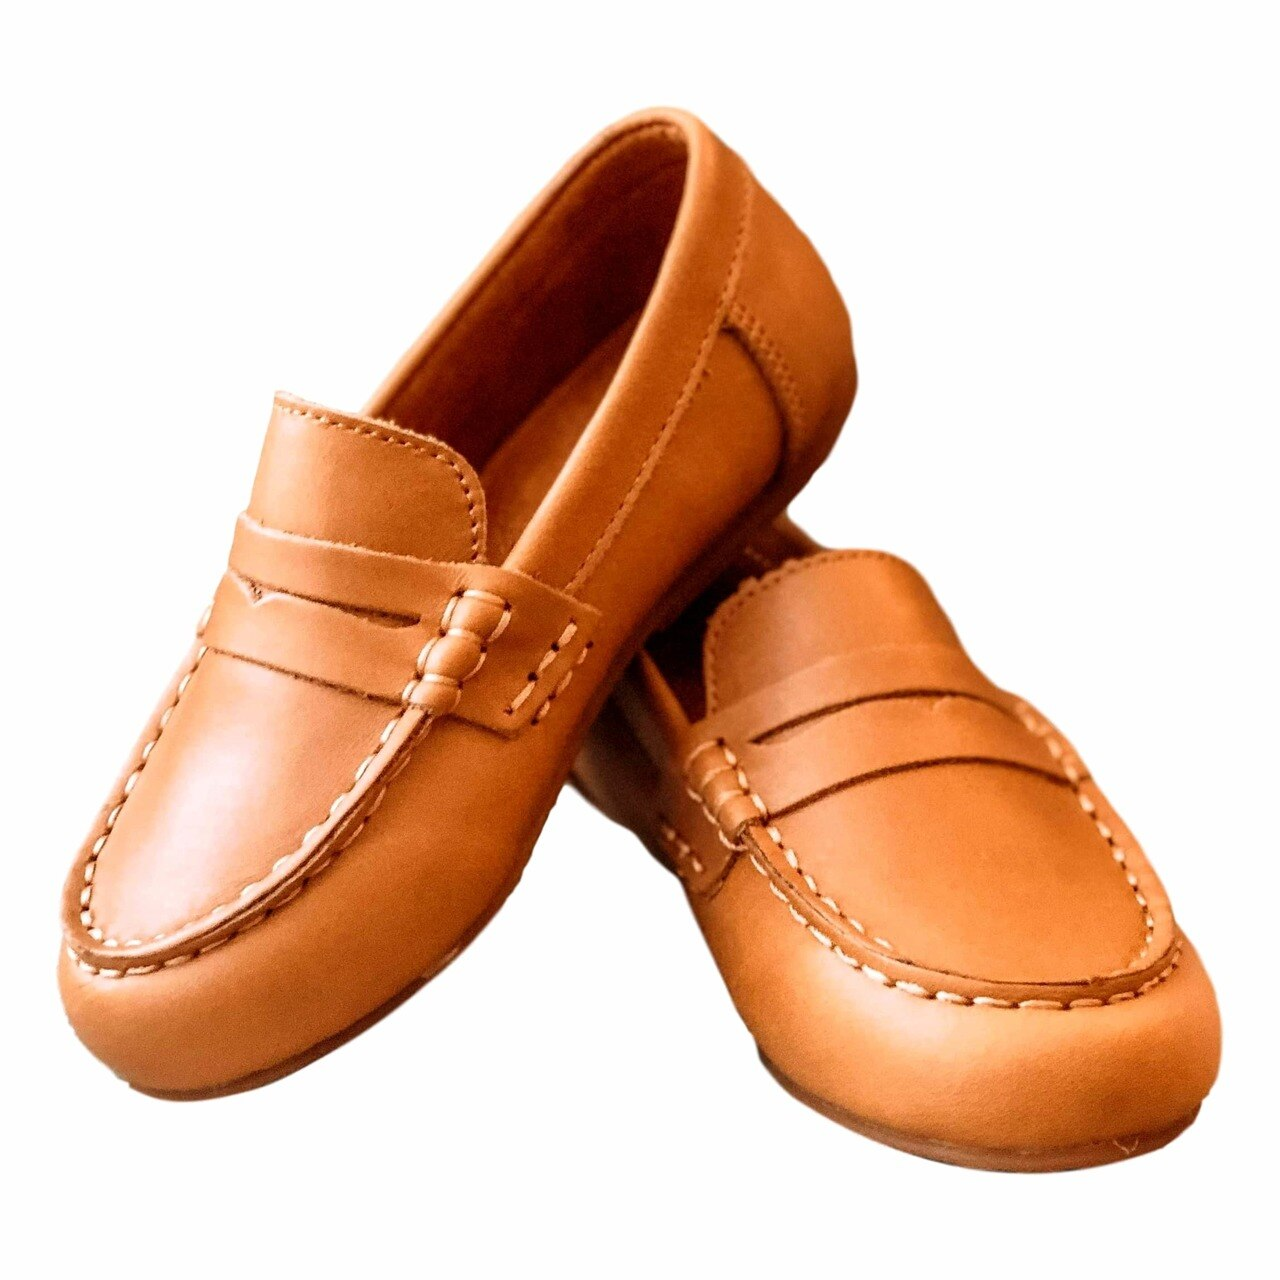 McCoy's Caramel Leather Penny Loafer Slip-On Shoes